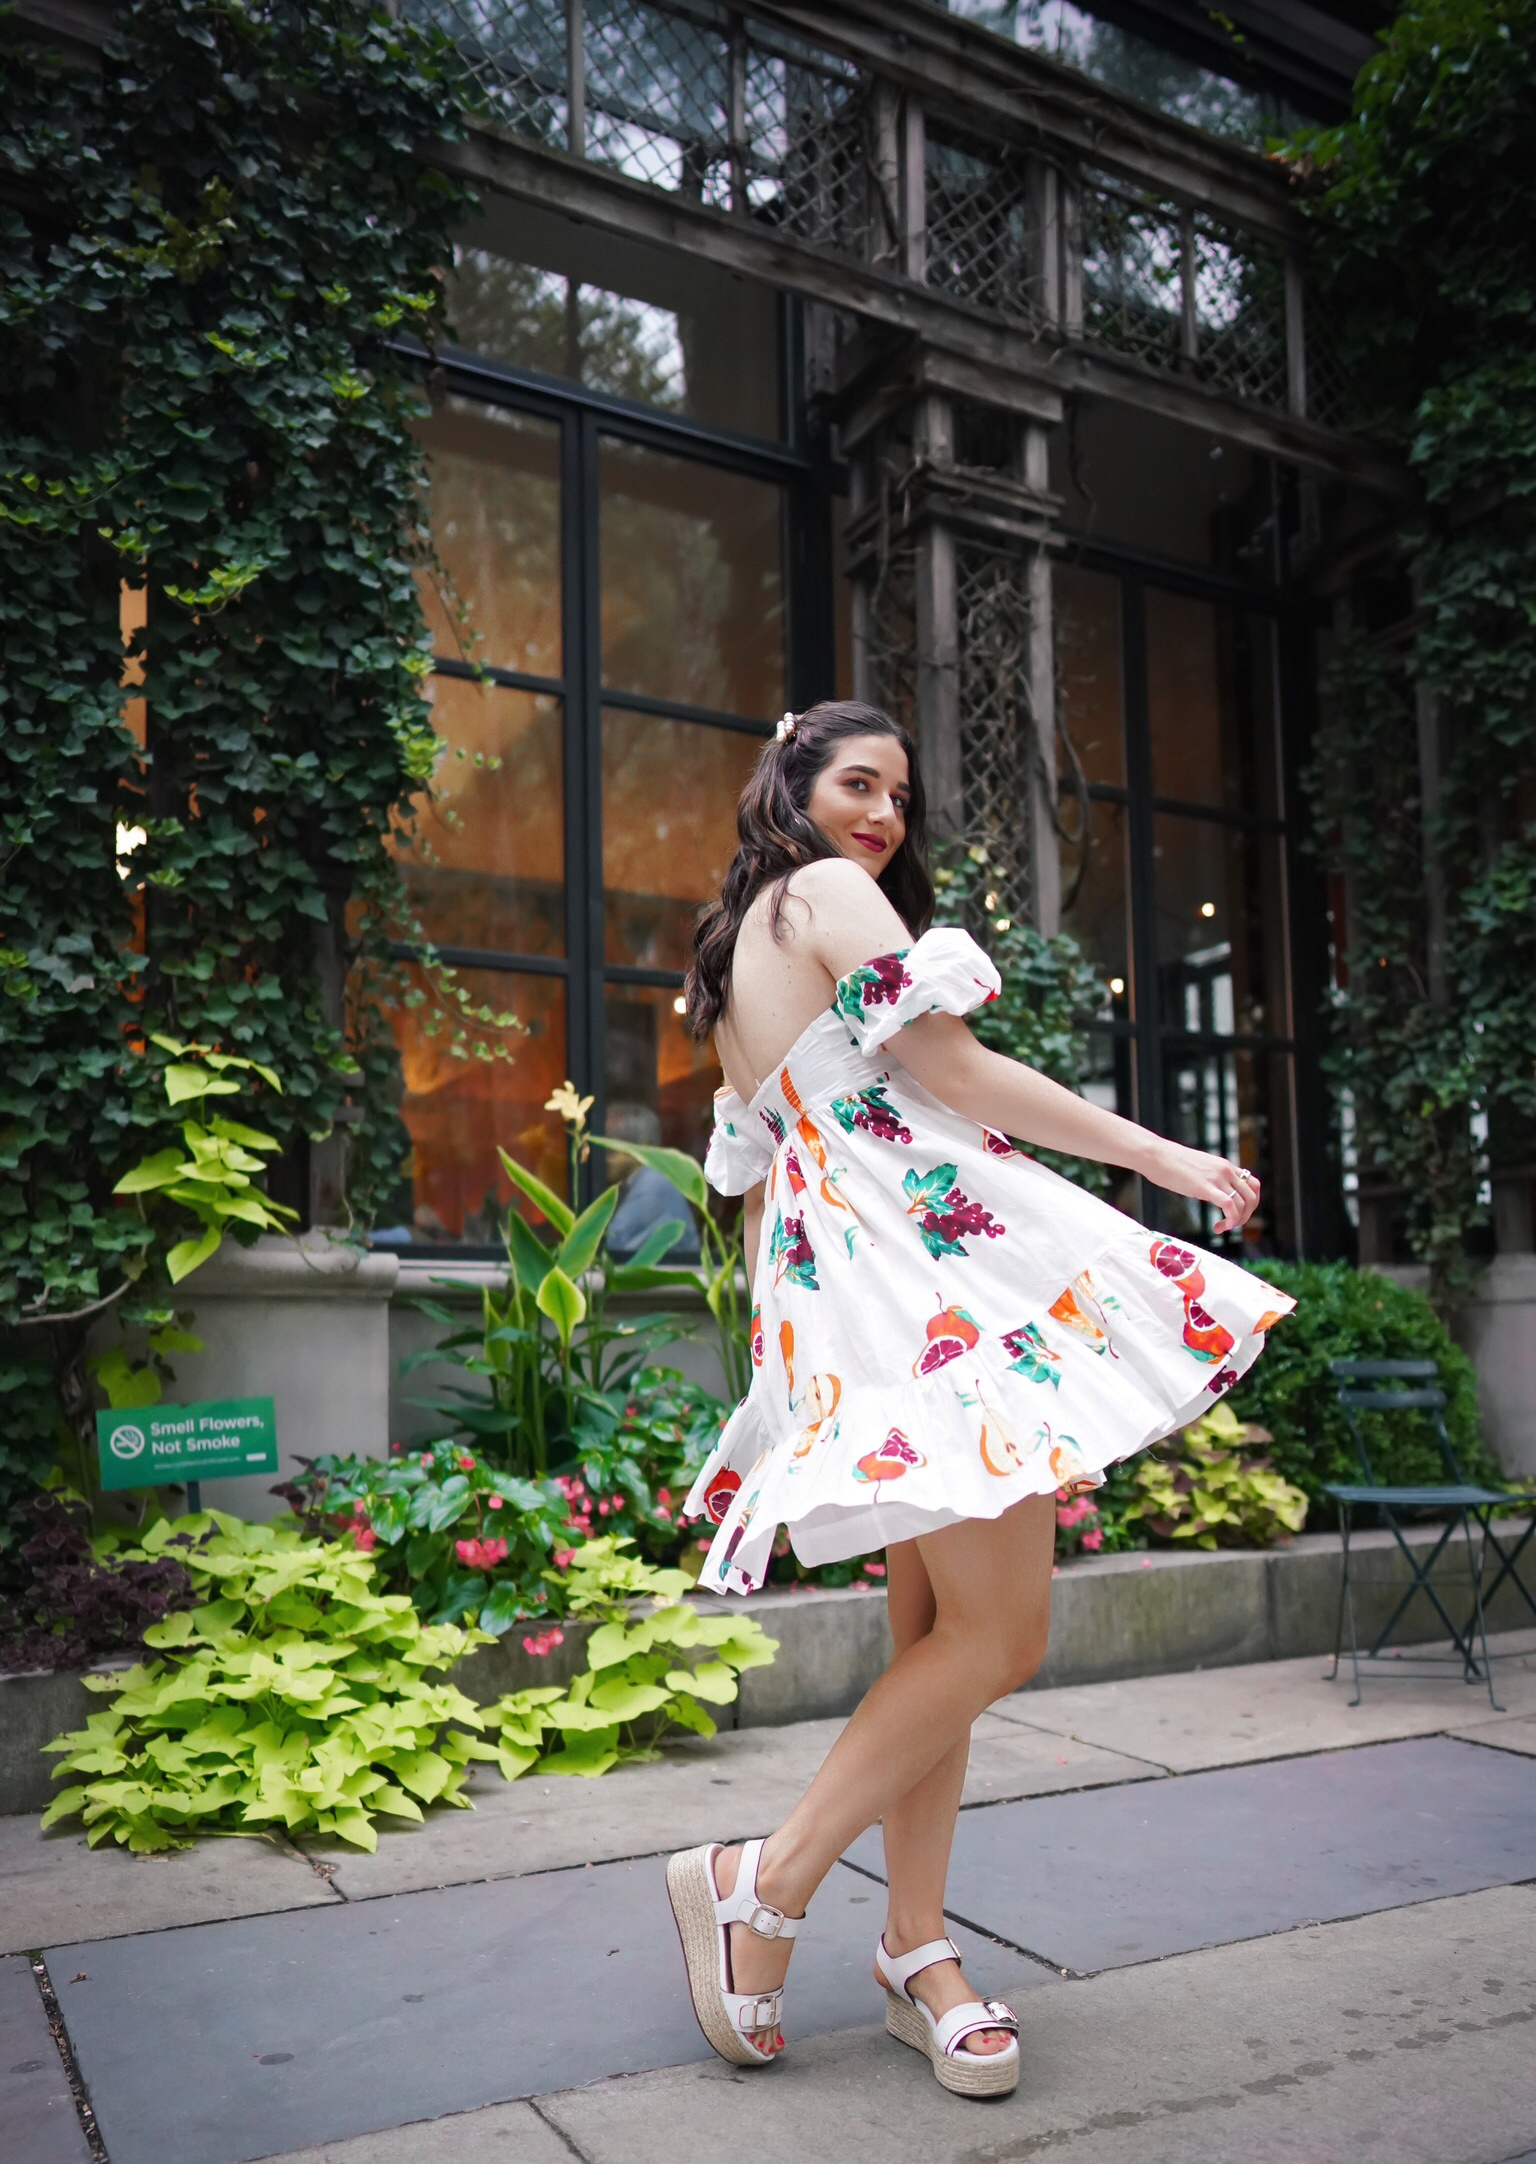 Are We Moving In The End? Cold Shoulder Fruit Dress Esther Santer Fashion Blog NYC Street Style Blogger Outfit OOTD Trendy Shopping Girl What How To Wear Nuuly Urban Outfitters Hair Clips Naturalizer Sandals Fad Pear Grapefruit Grapes Summer New York.JPG